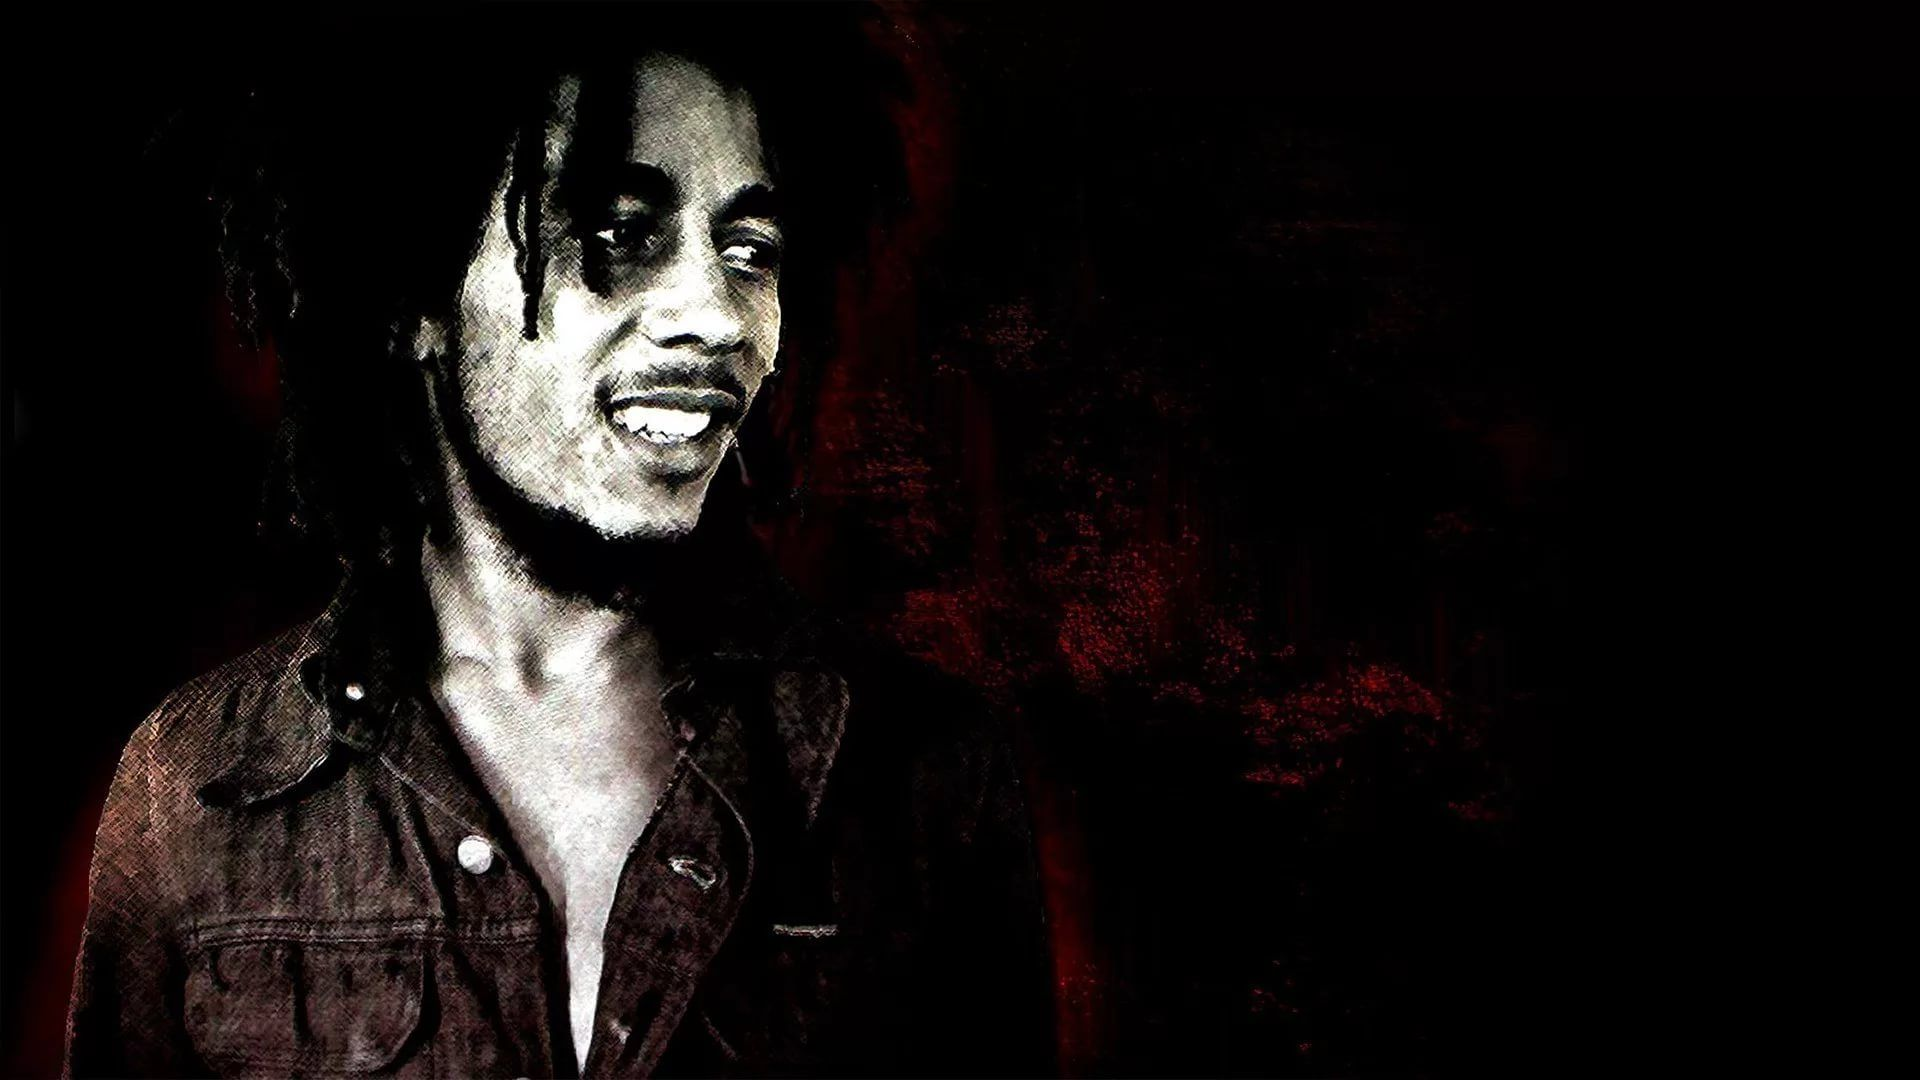 Bob Marley download nice wallpaper